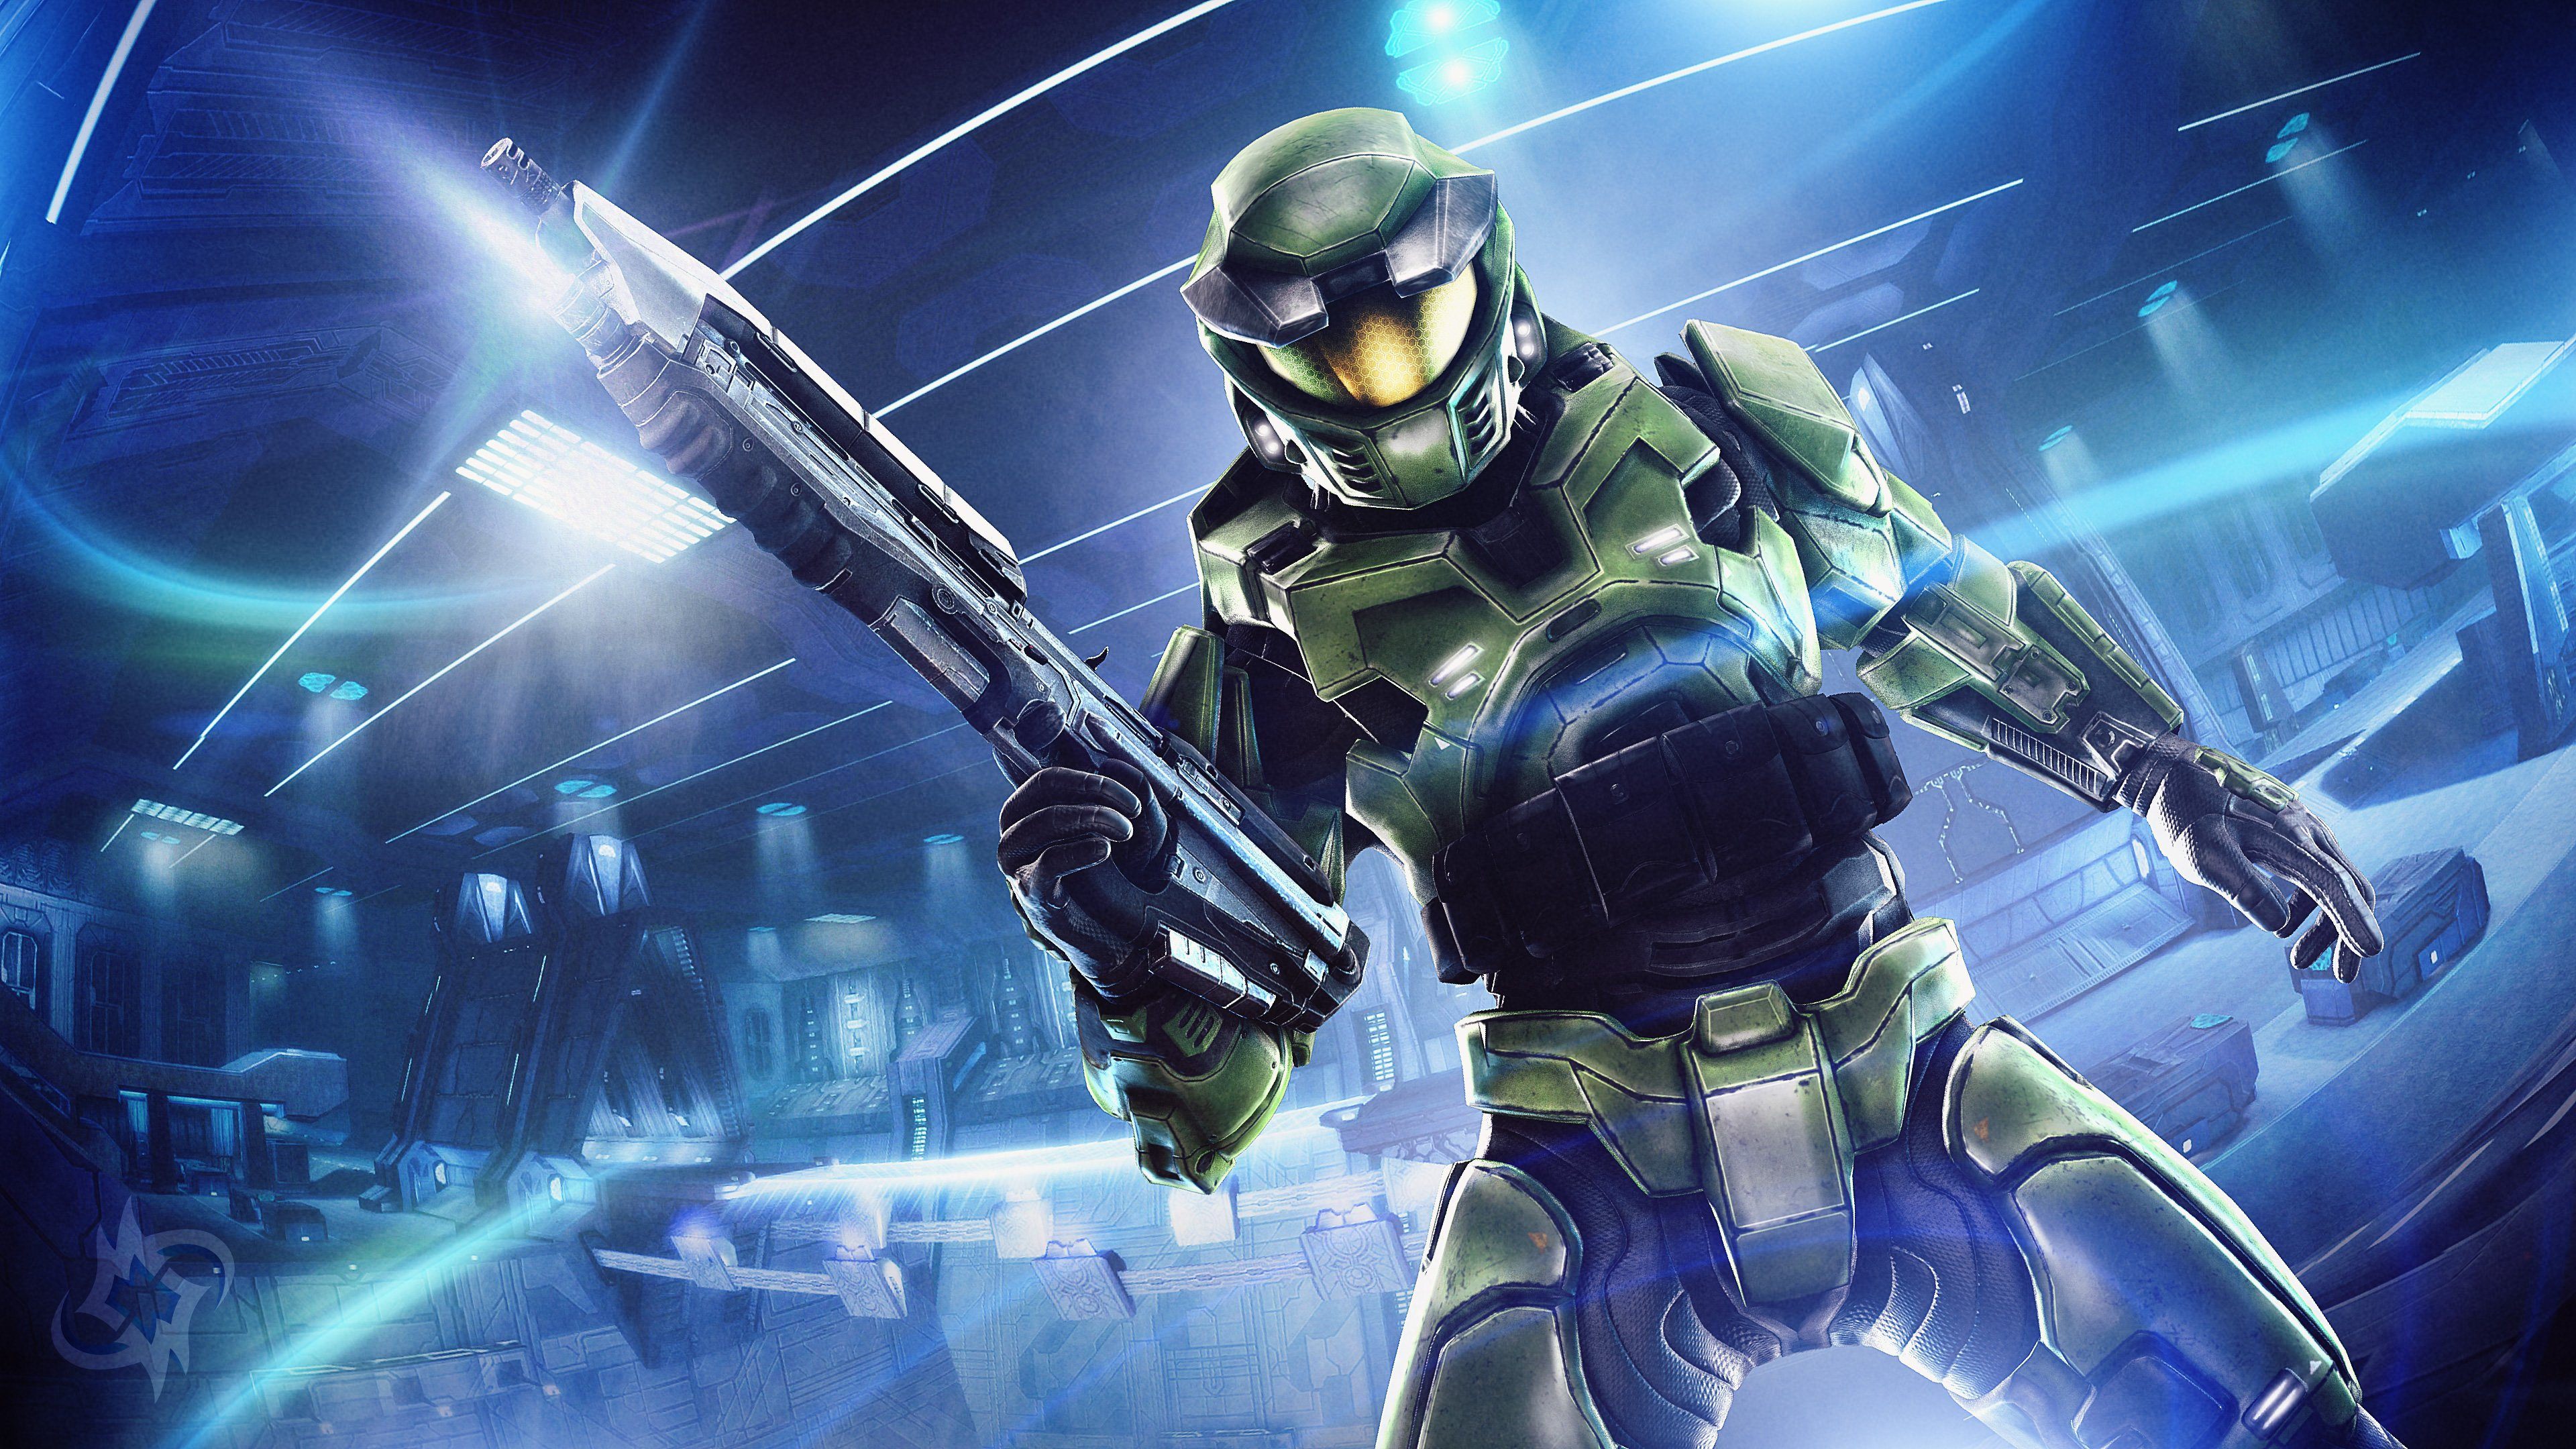 Cortana Halo Soldier Wallpapers Hd Wallpapers